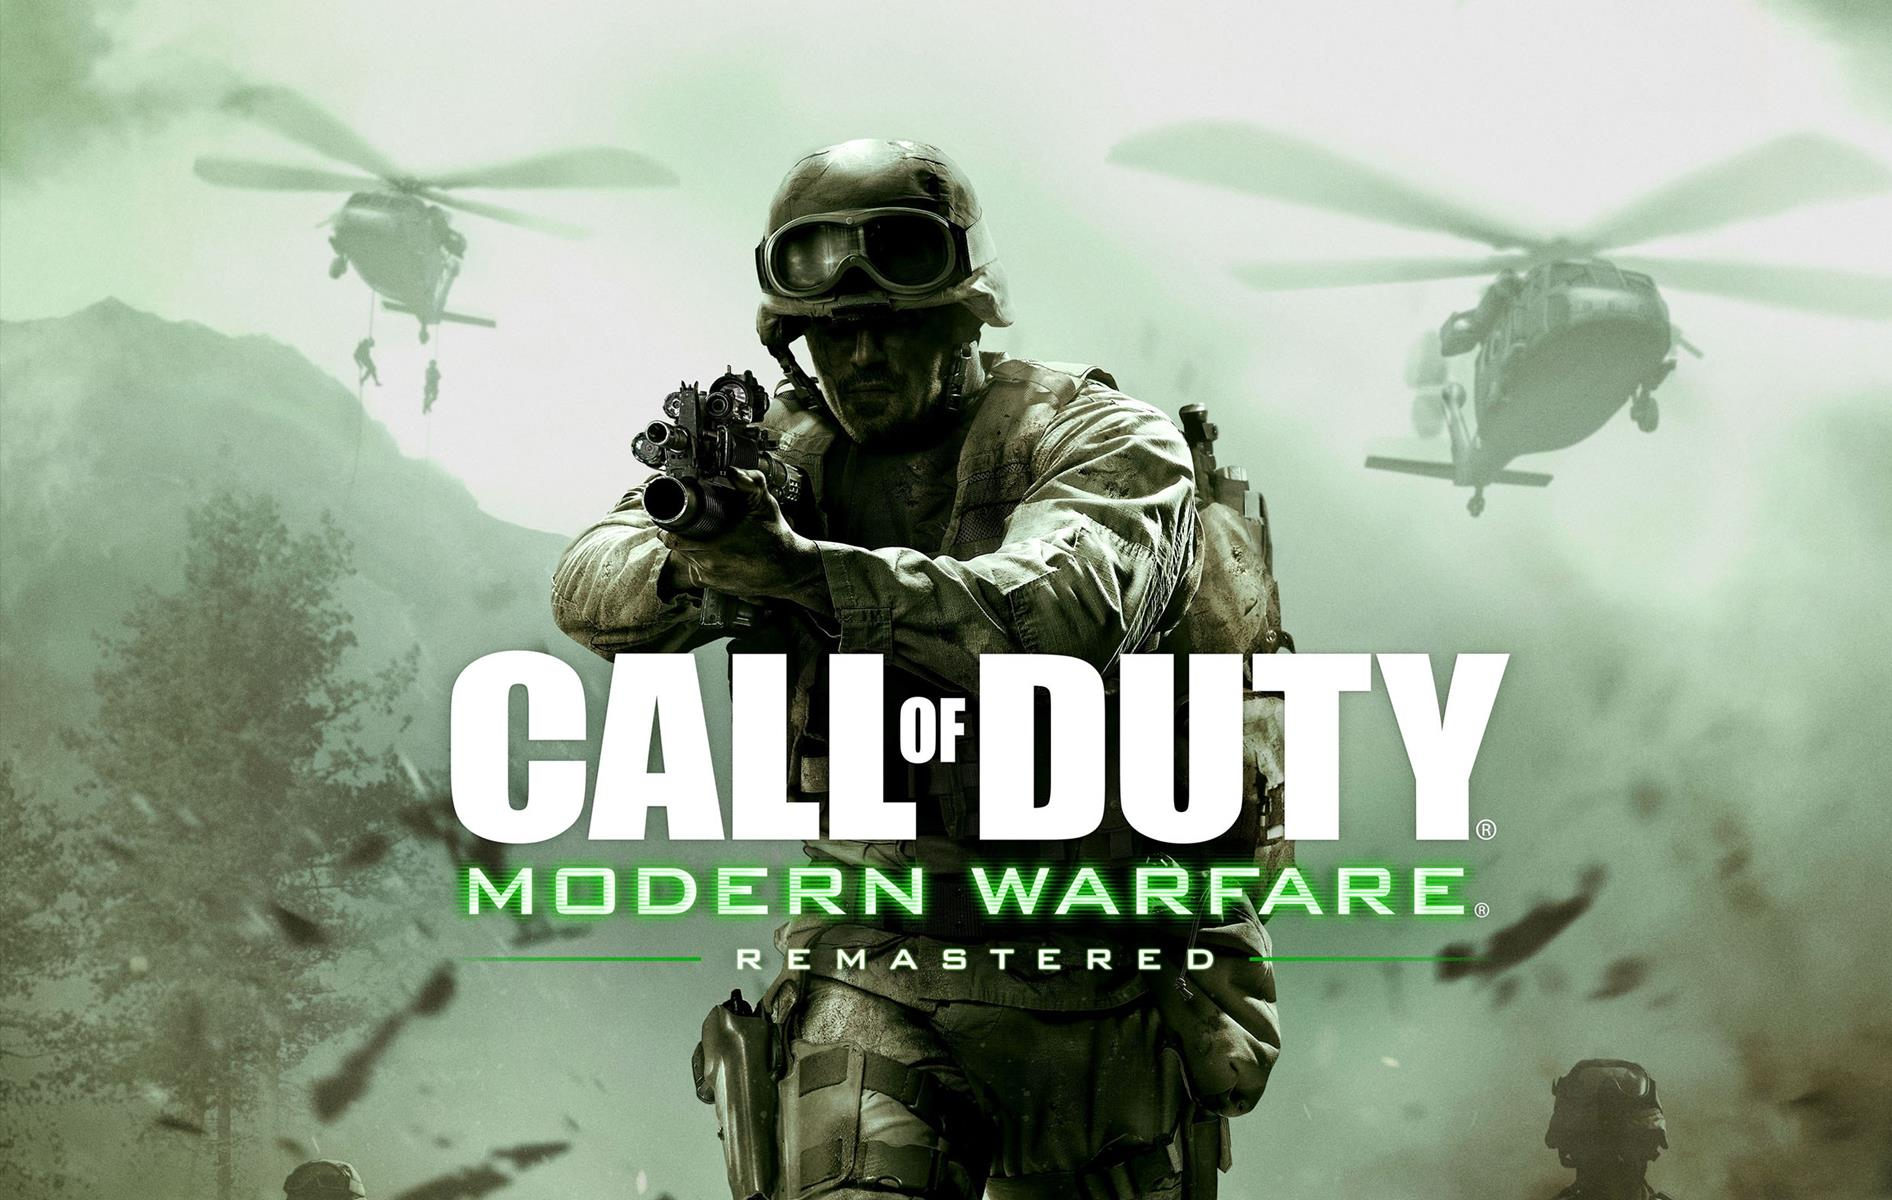 Standalone Call of Duty: Modern Warfare Remastered is coming out next week